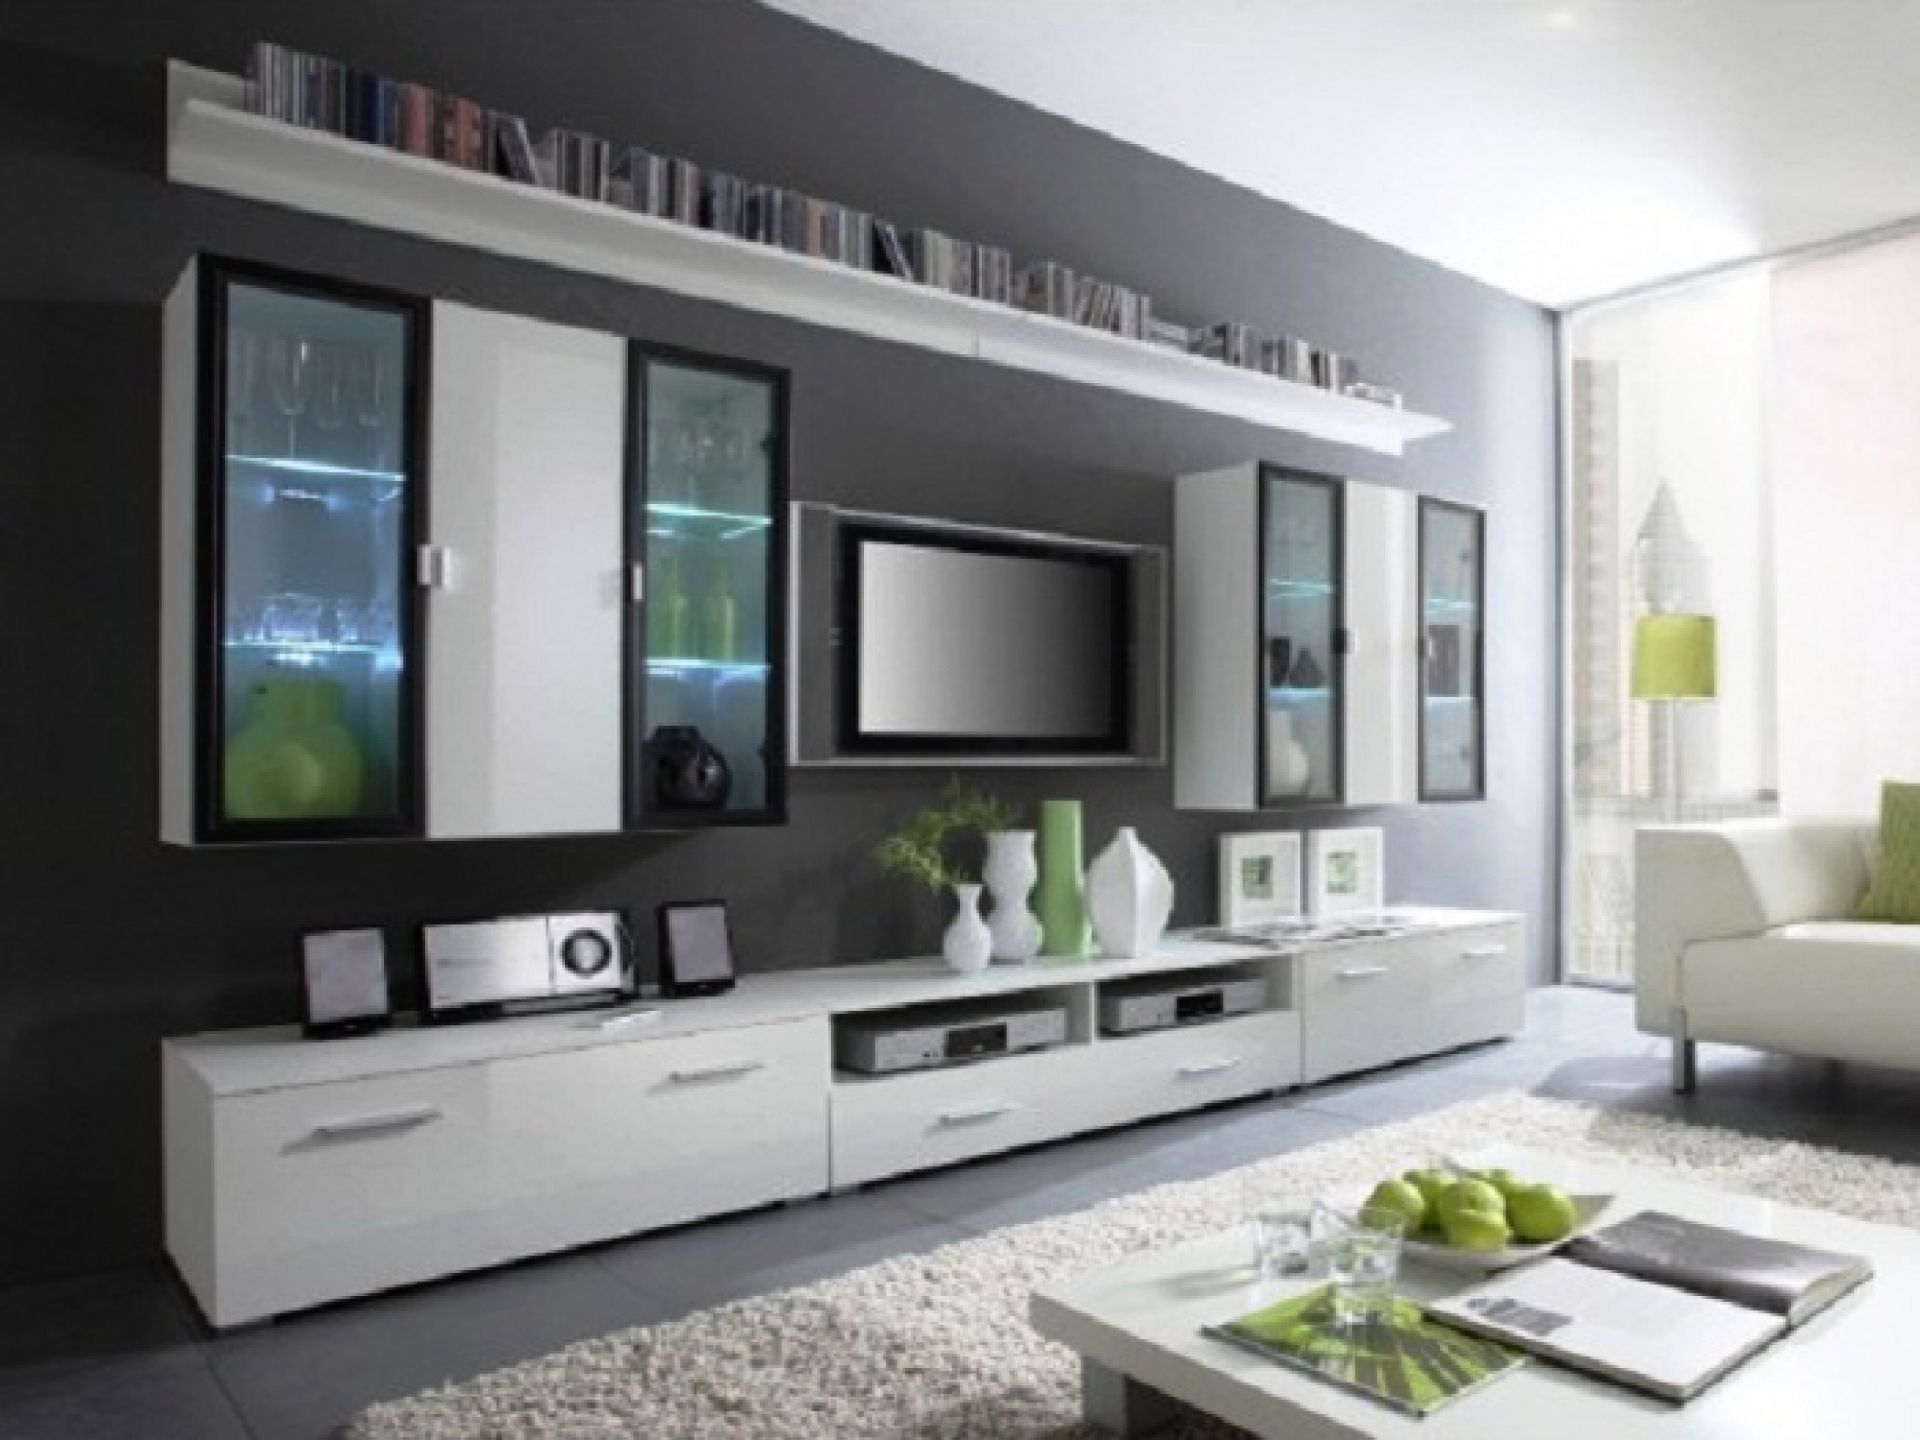 Small modern living room ideas with tv - Living Room Tv Walls Design Ideas Google Search